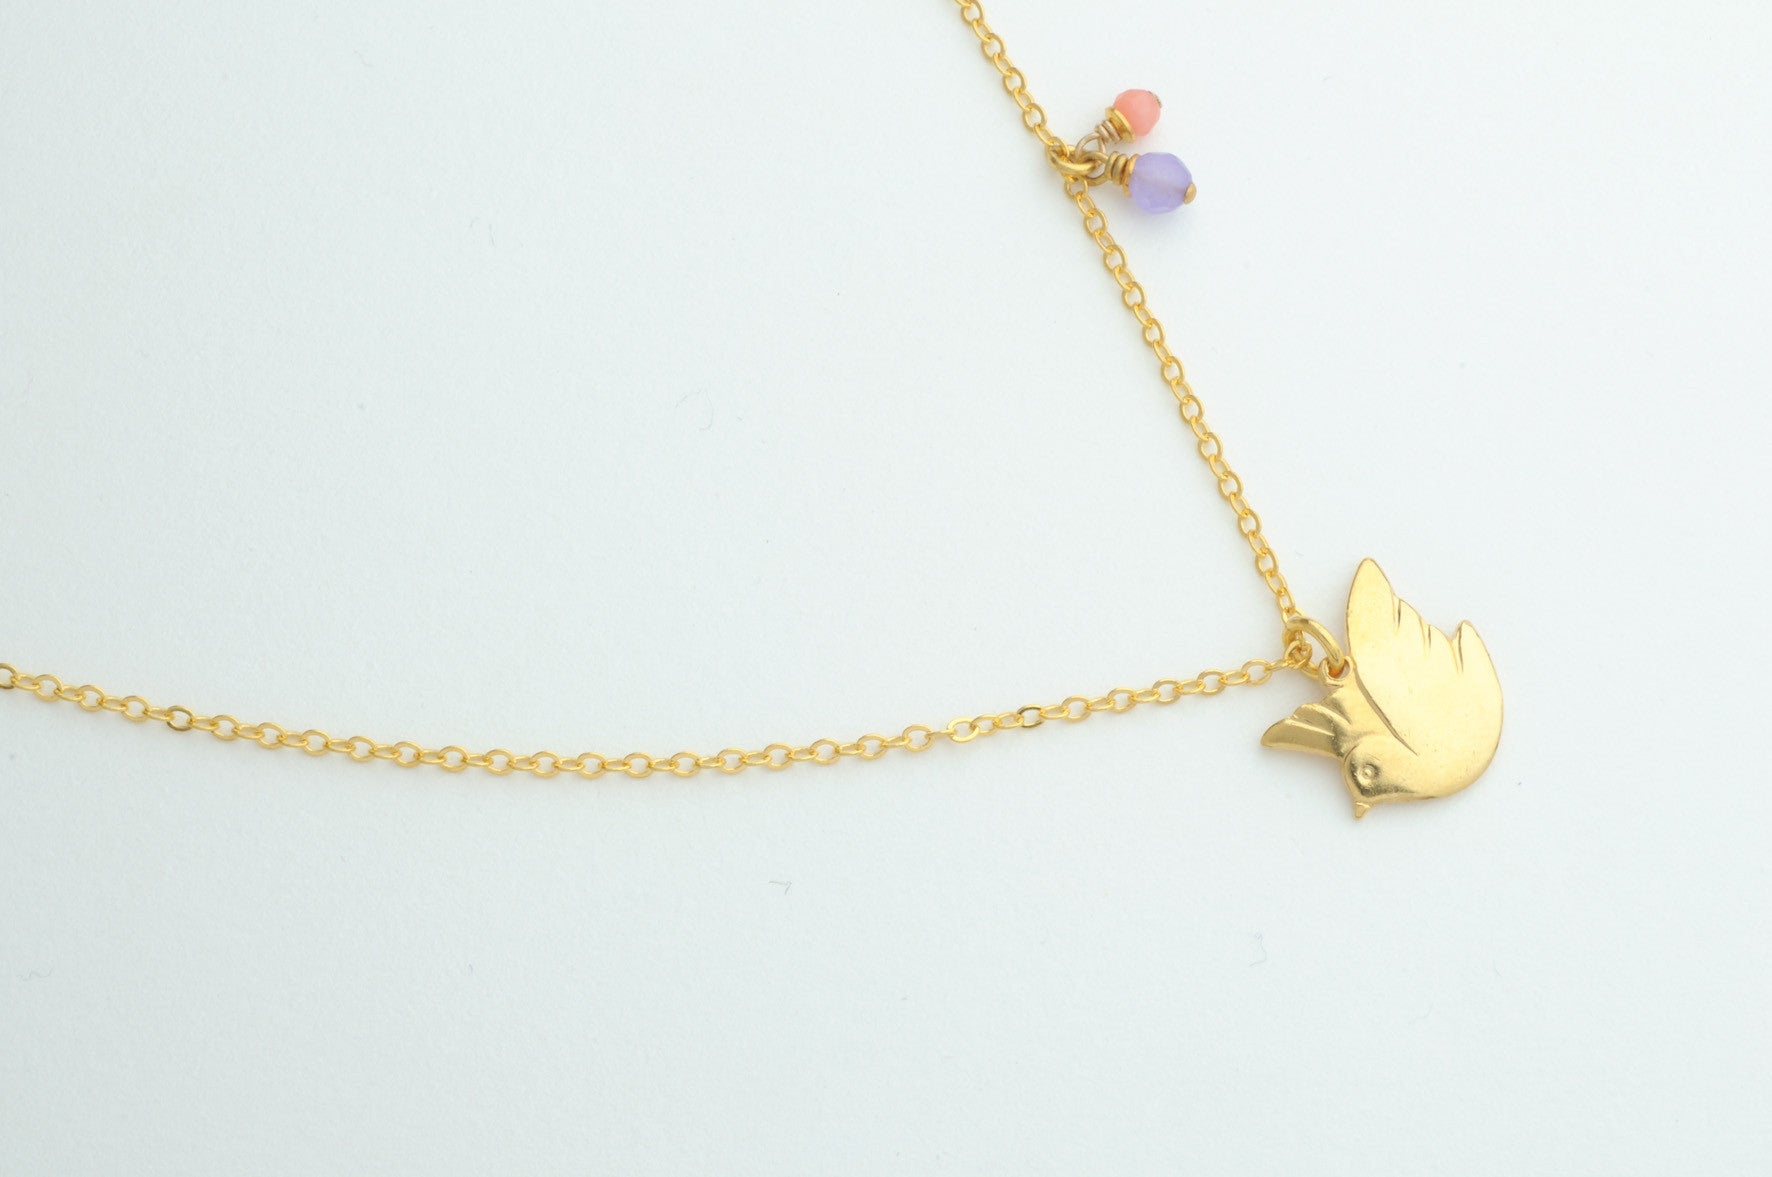 Kette PEACE DOVE vergoldet